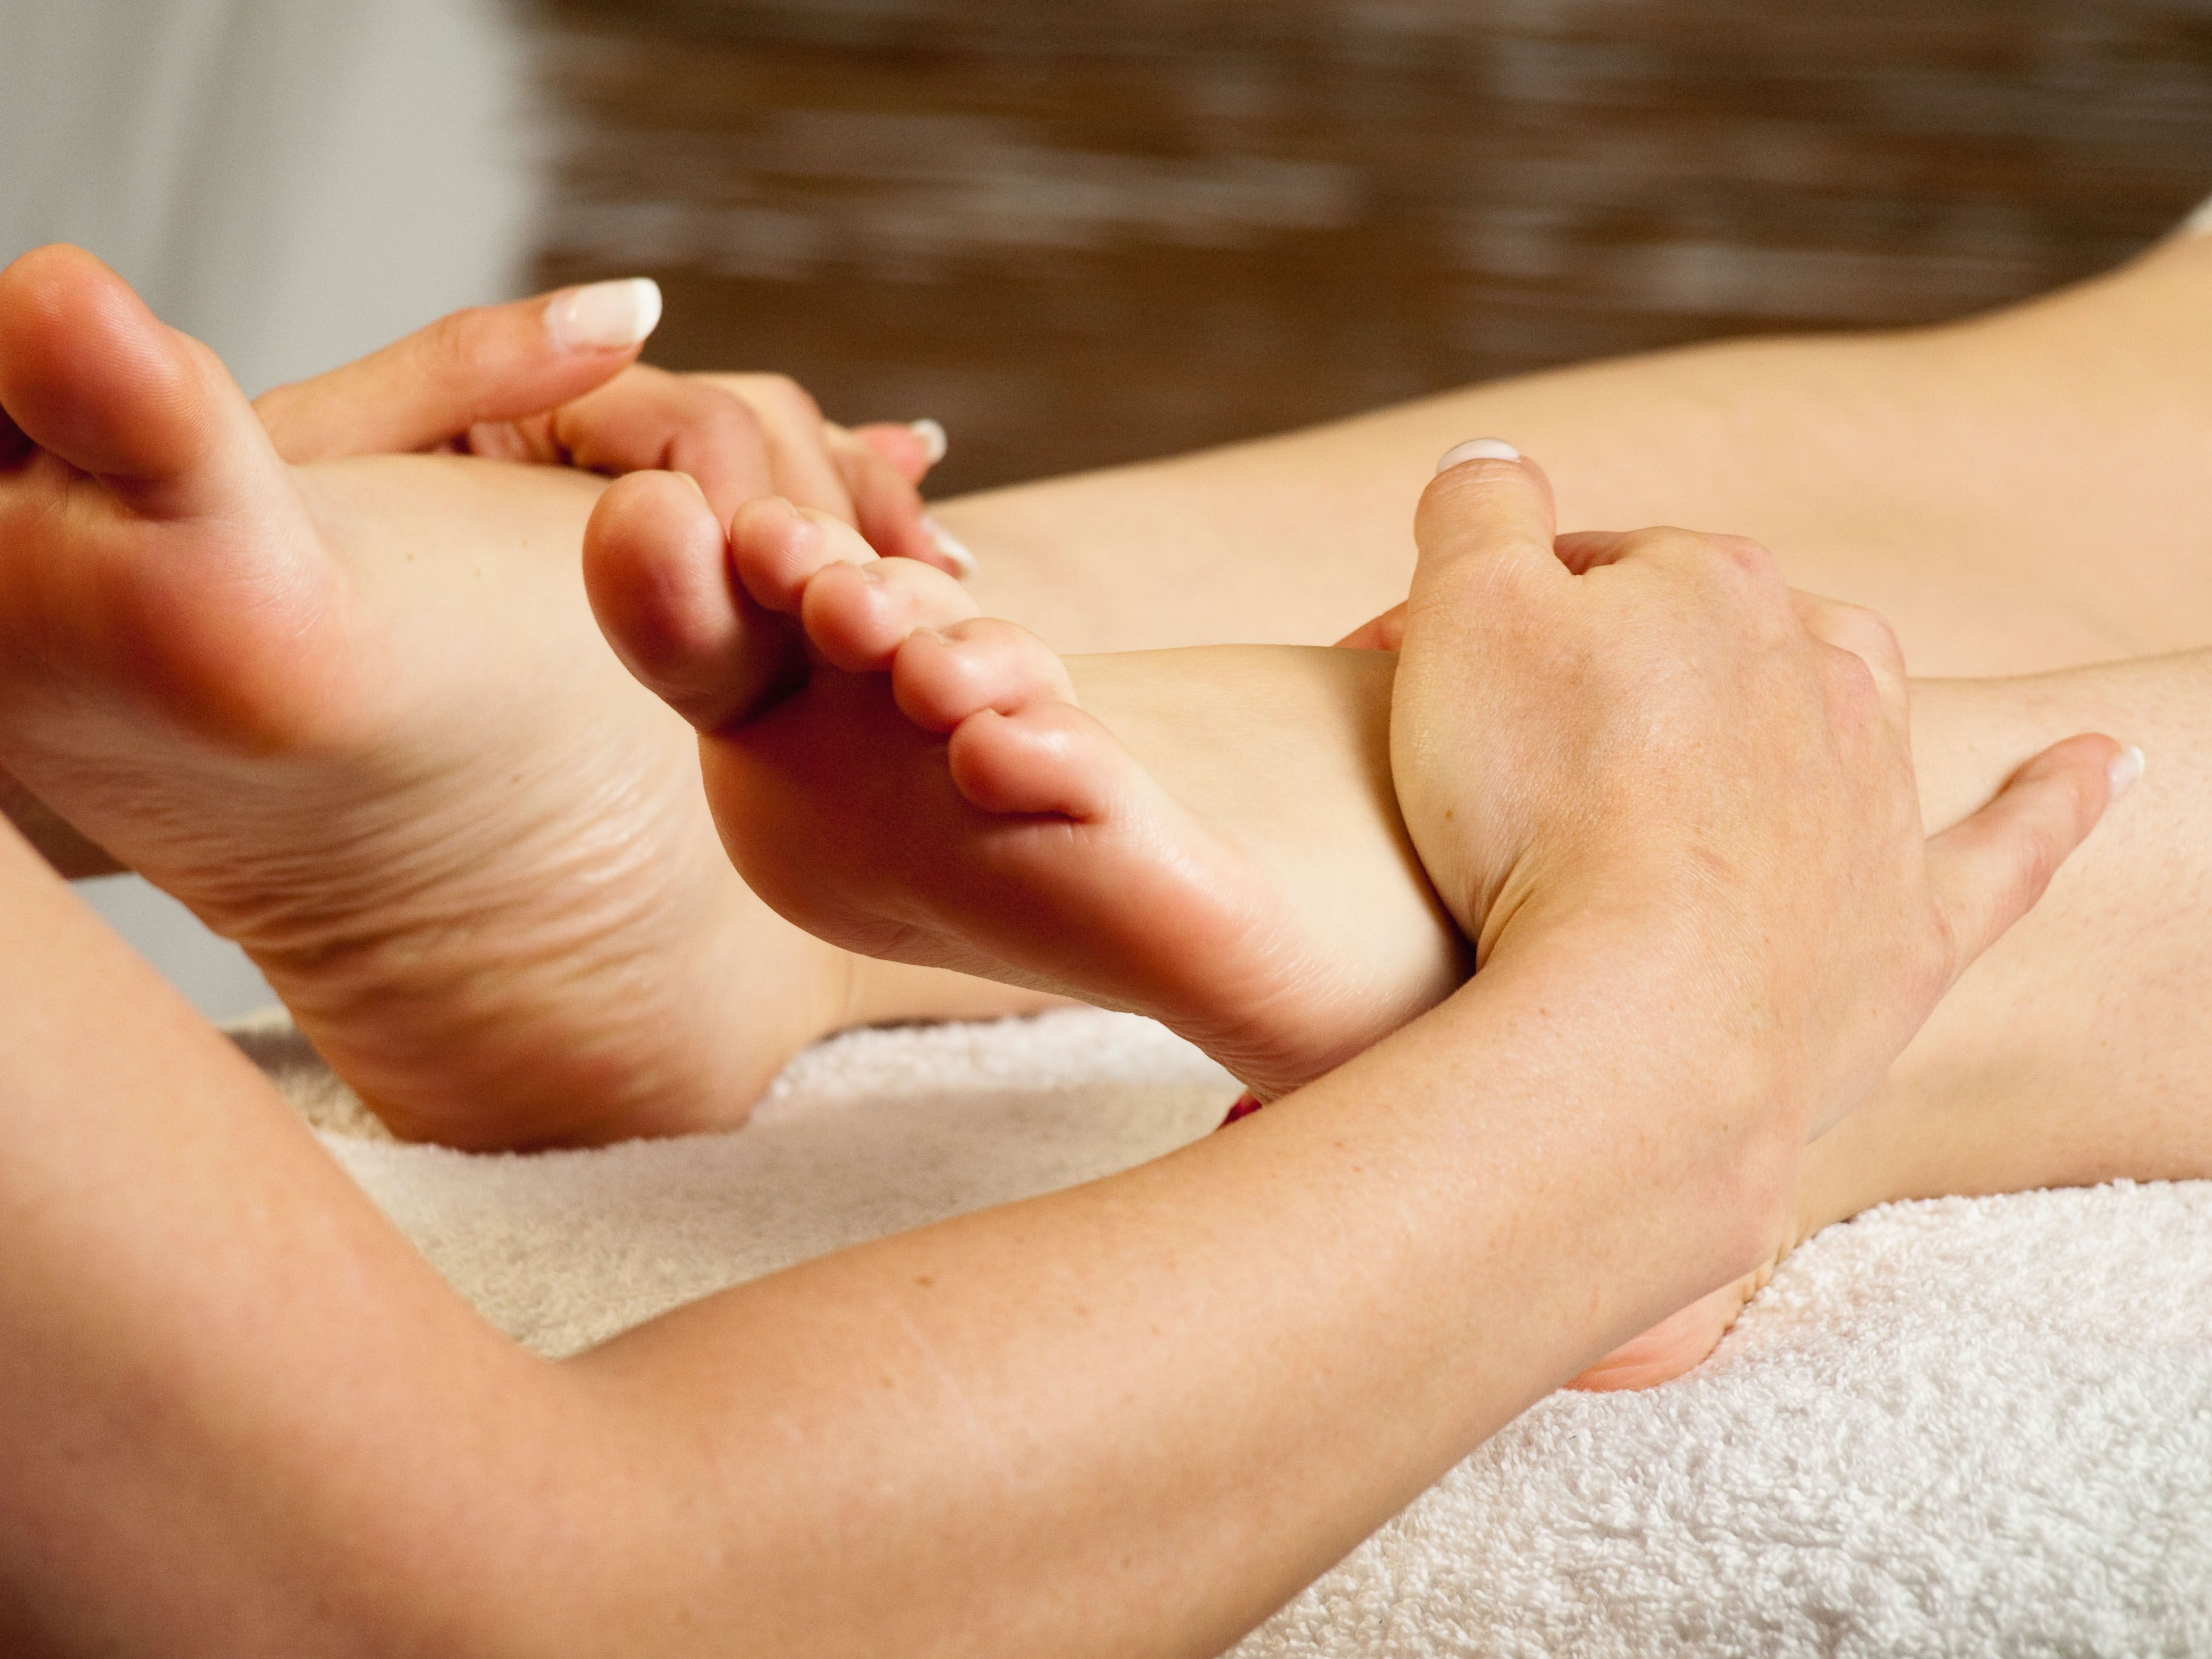 Foot Massage Don T You Just Love It Reflexology Massage Reflexology Foot Massage